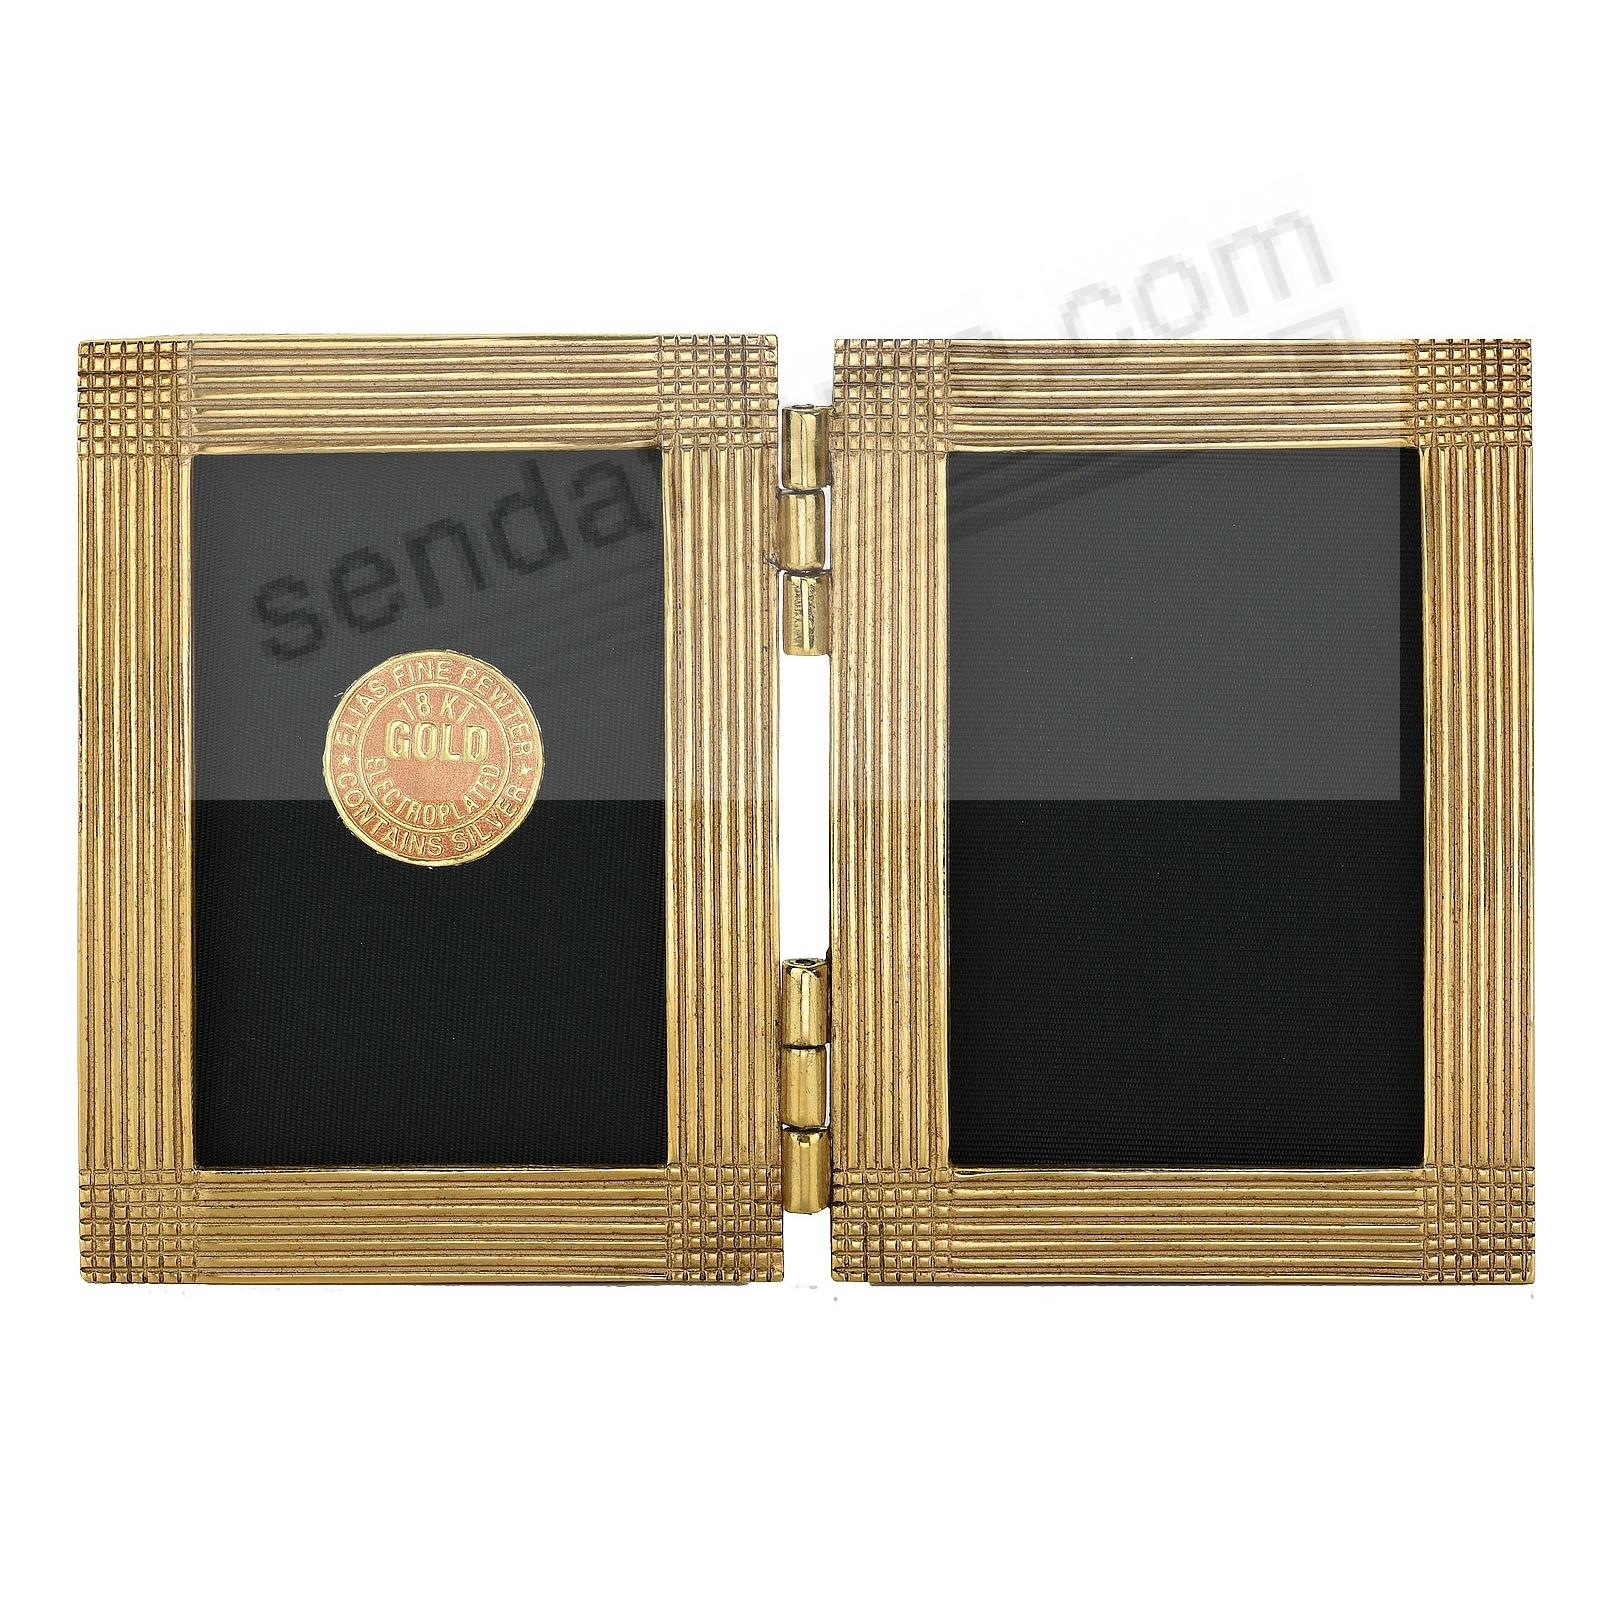 MATRIX luxe museum gold over fine pewter DOUBLE 2x3 by Elias Artmetal®